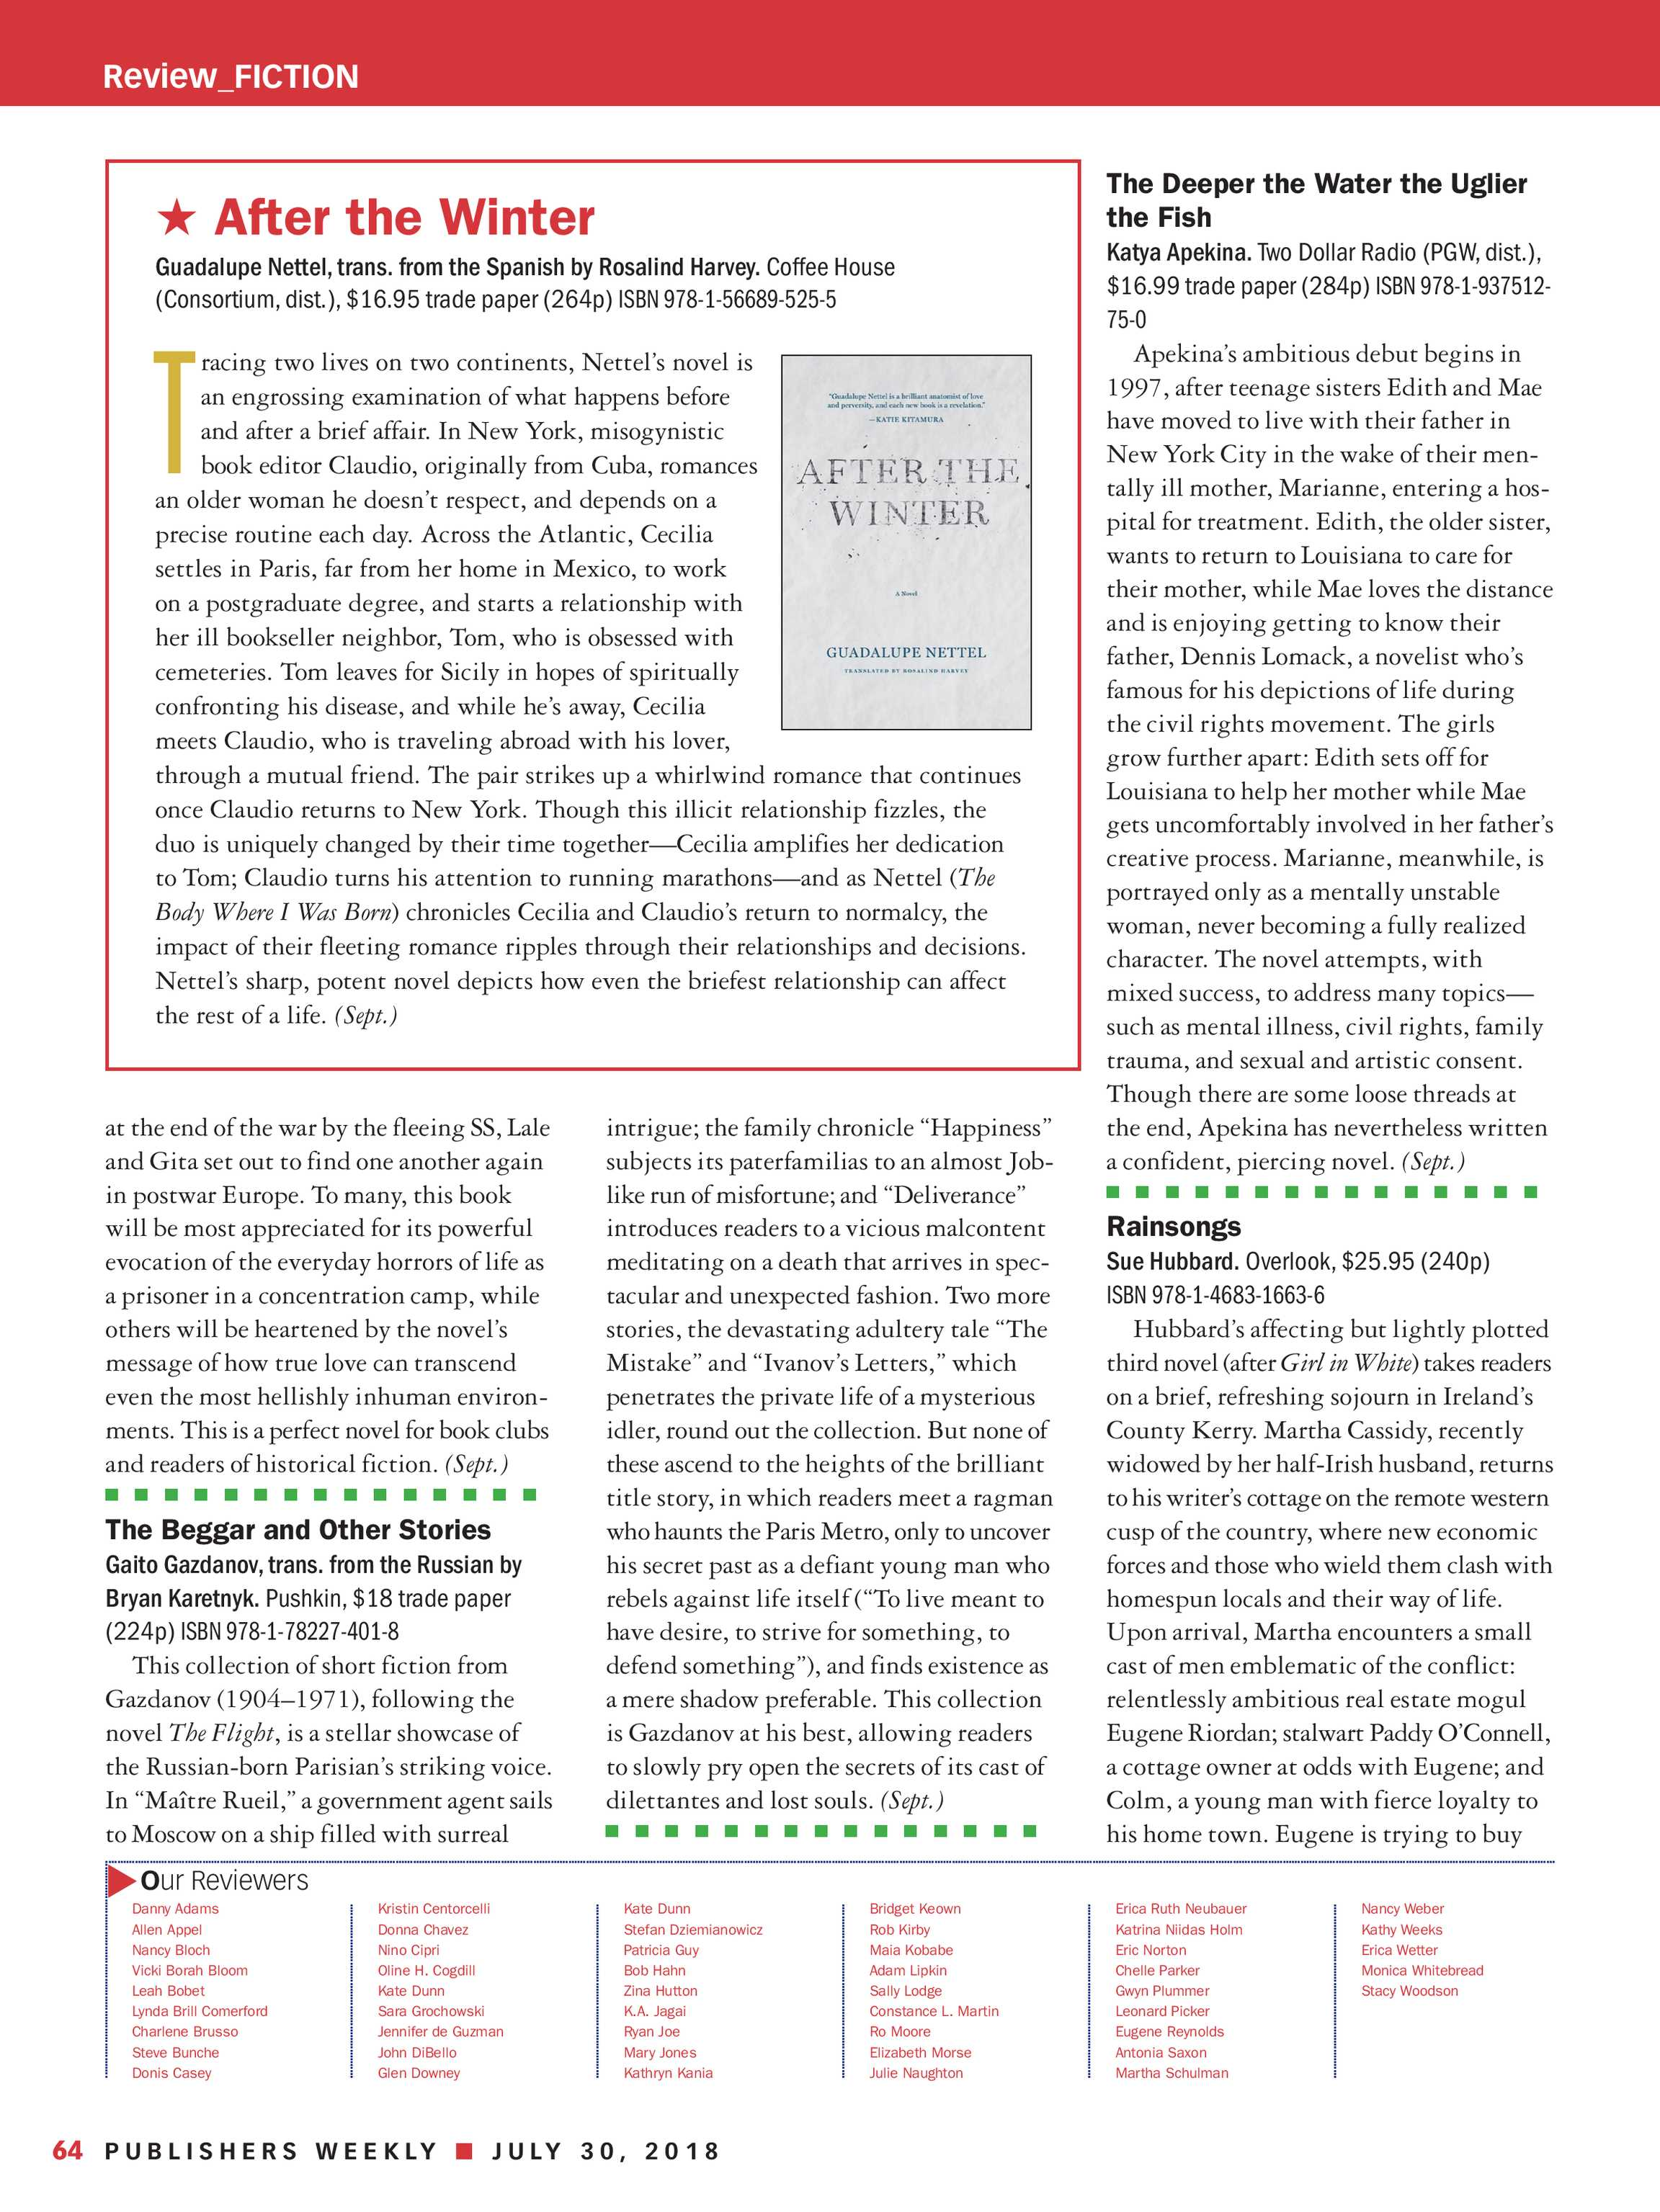 Publishers Weekly - July 30, 2018 - page 63